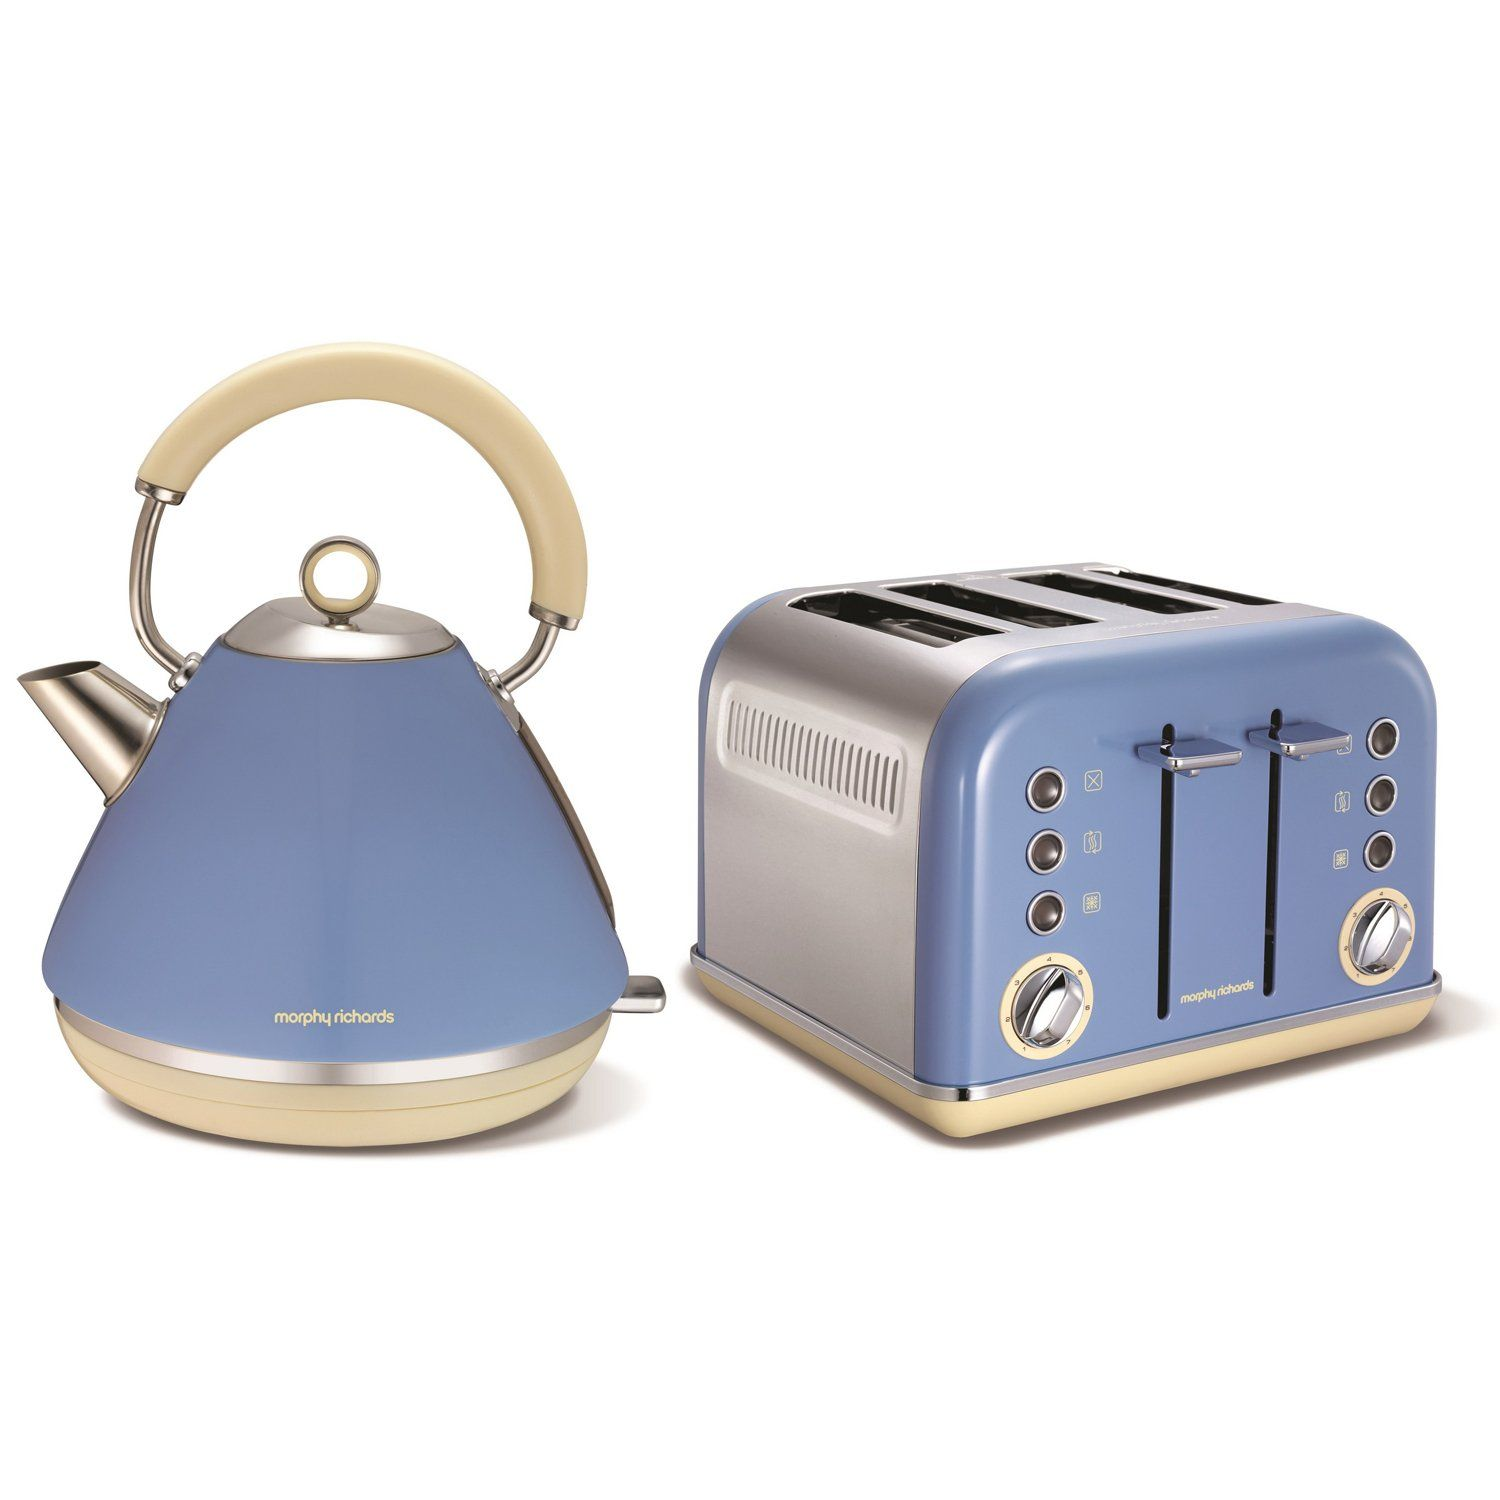 Kitchen Accessories Amazon Uk: MORPHY RICHARDS ACCENTS BLUE STAINLESS STEEL KETTLE JUG